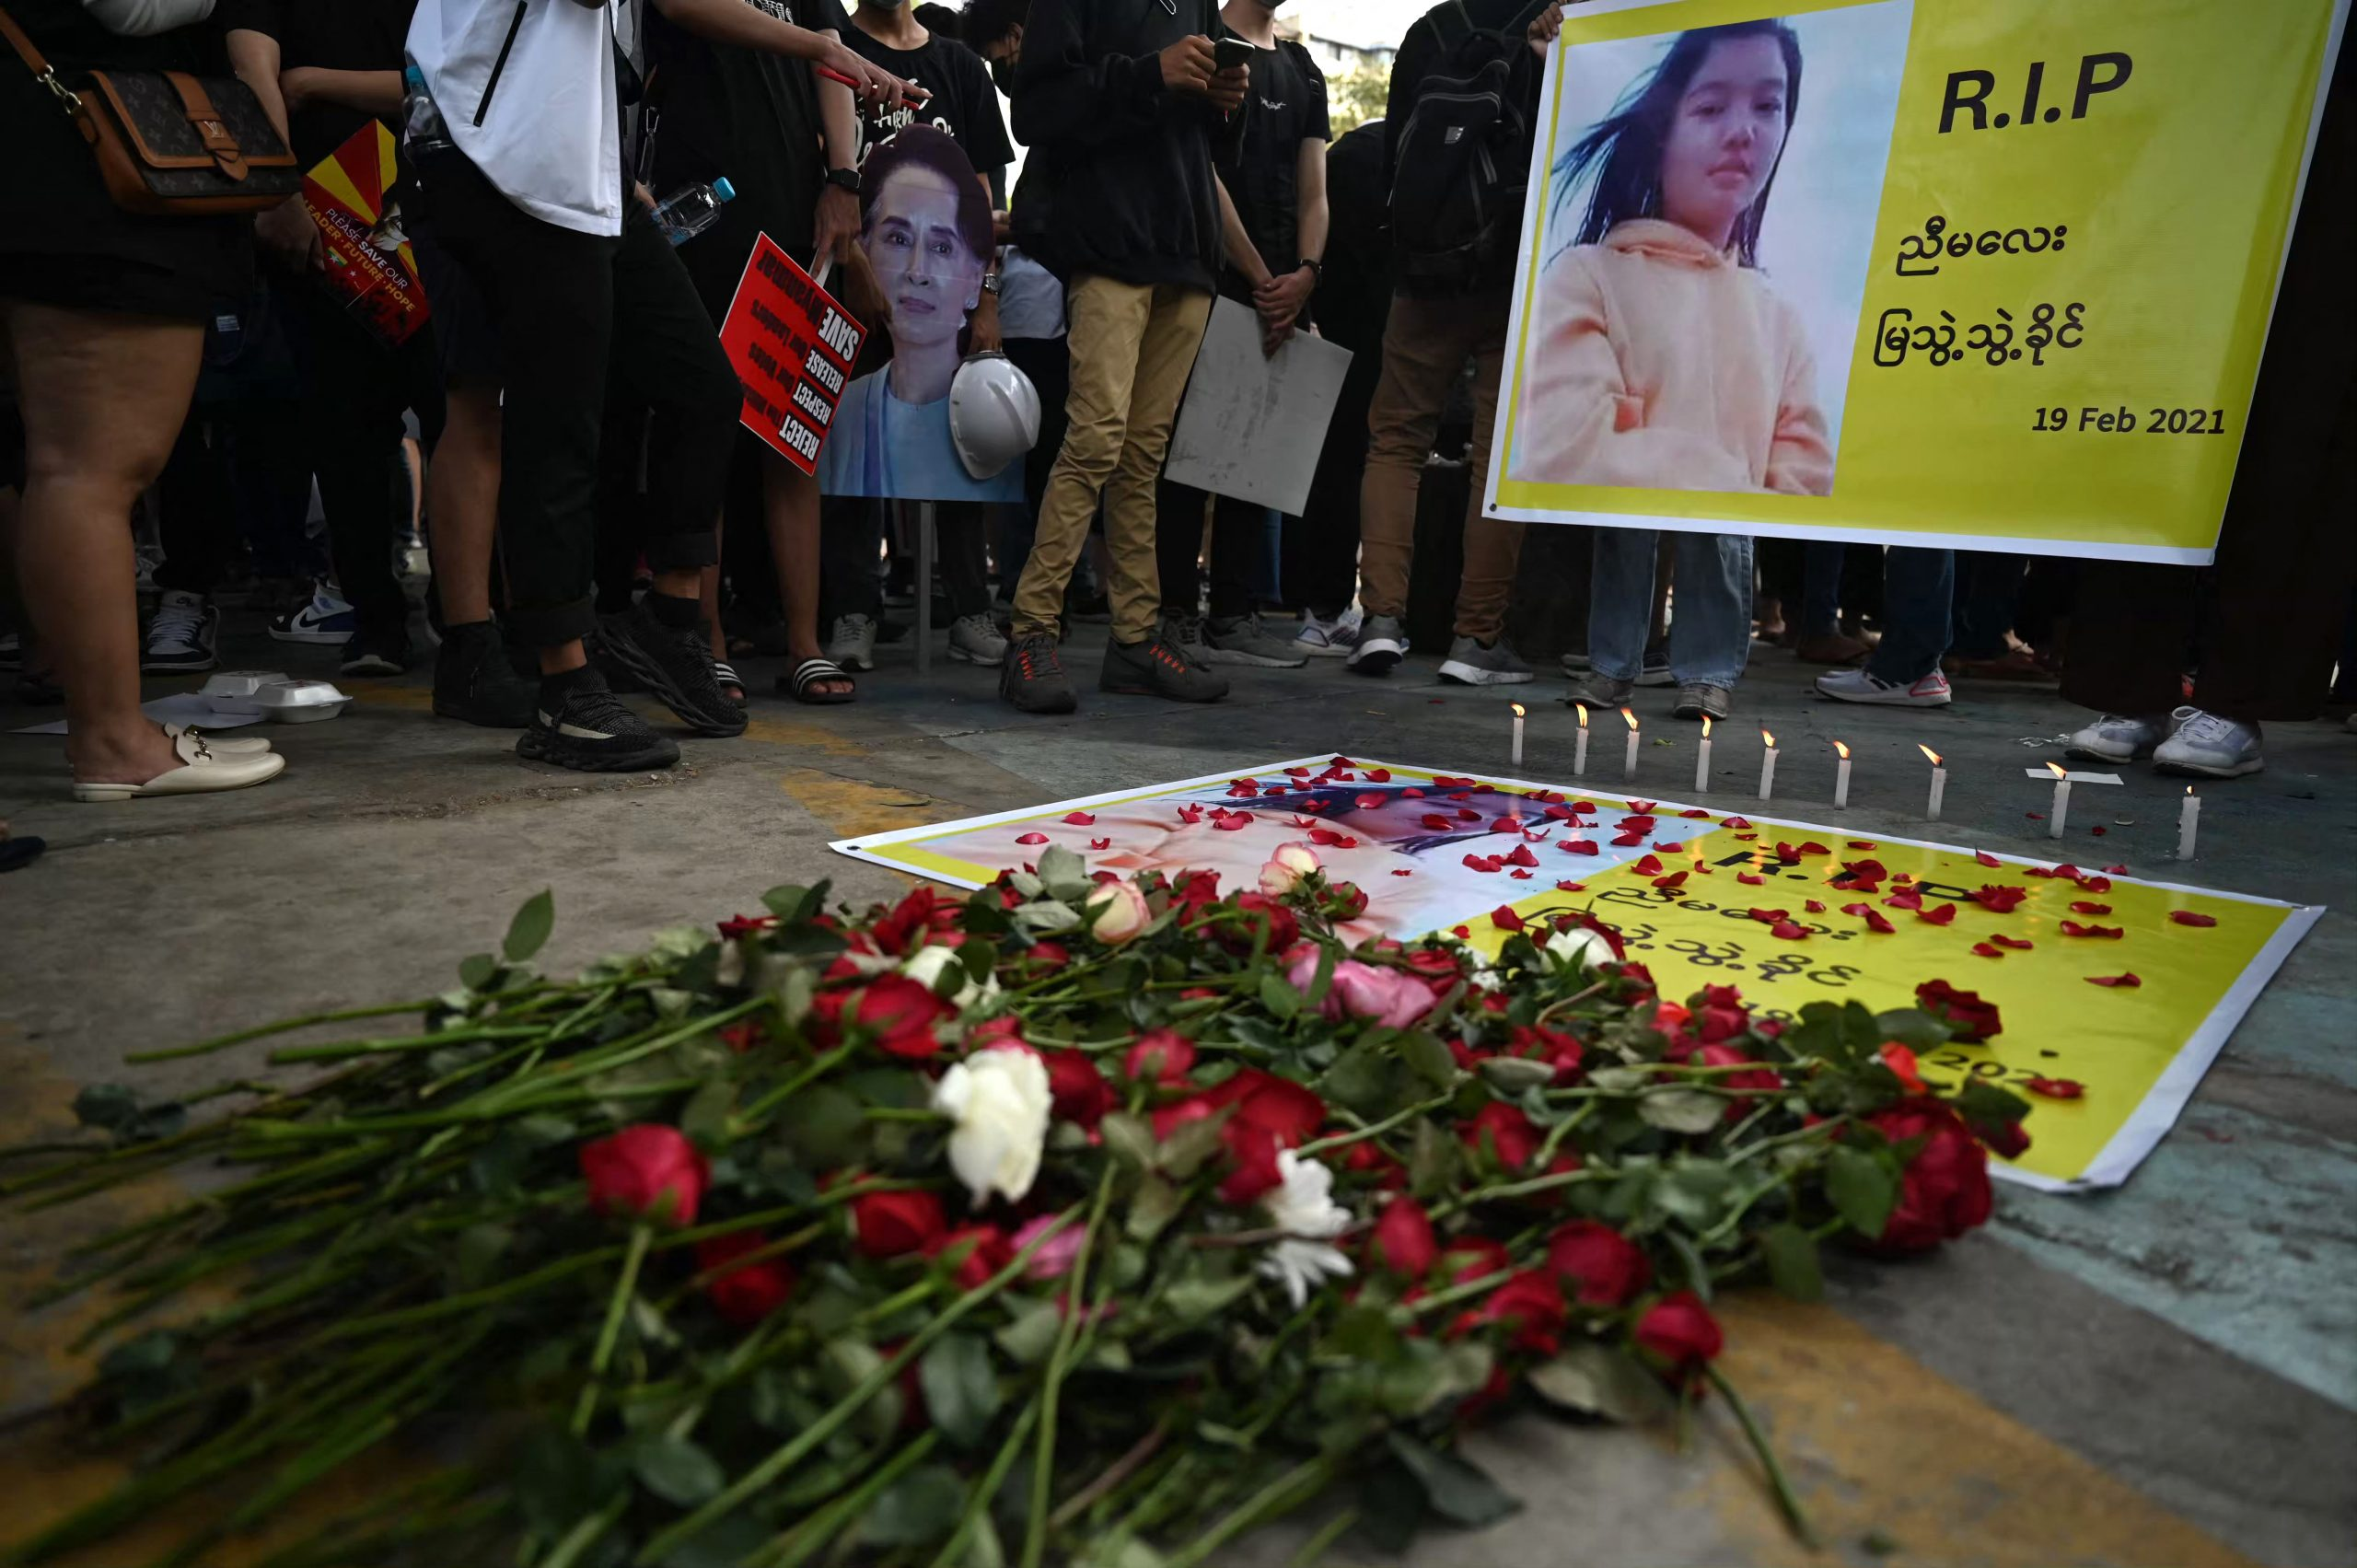 Flowers are placed next to a banner during a memorial for Ma Mya Thwate Thwate Khaing in Yangon on February 20. The young woman died from a gunshot wound sustained during a rally against the military on February 9. (AFP)